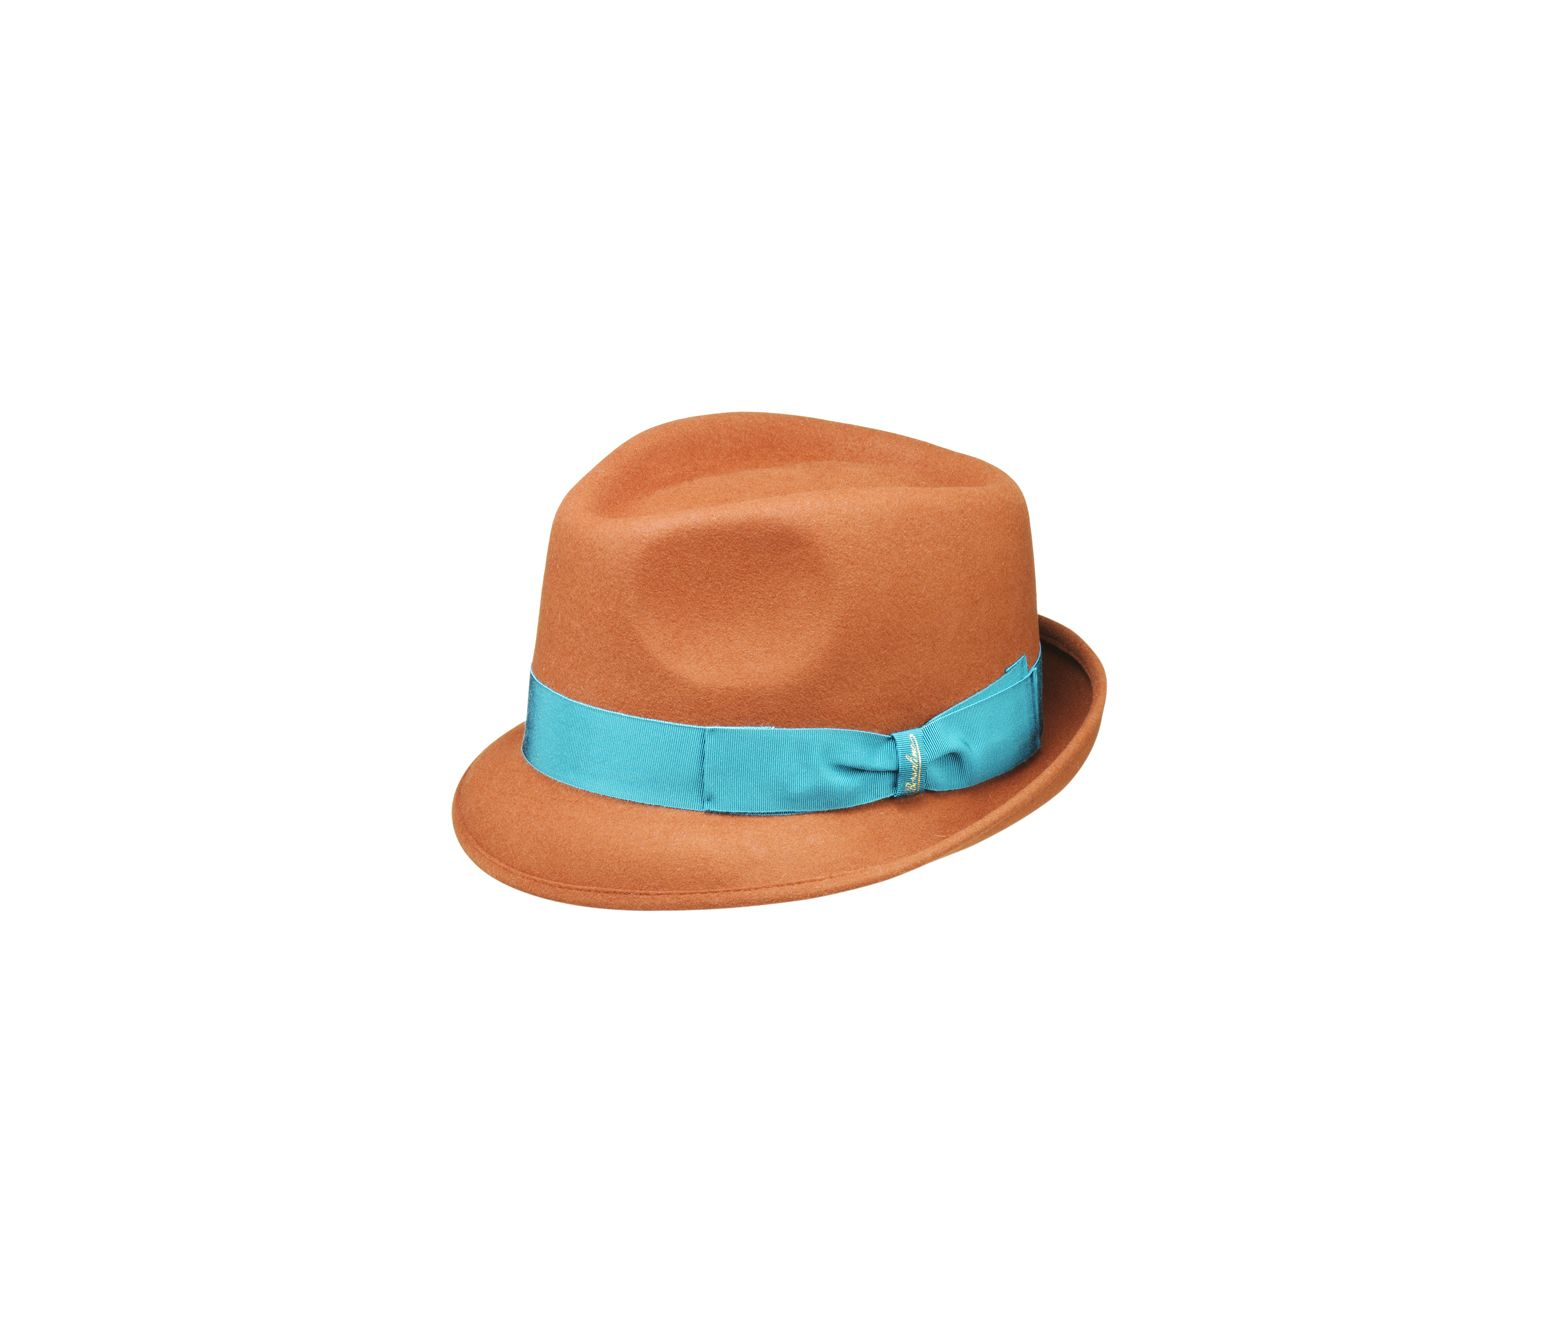 Felt hat. Product code: 160225 Shop it here: http://bit.ly/AW15_man